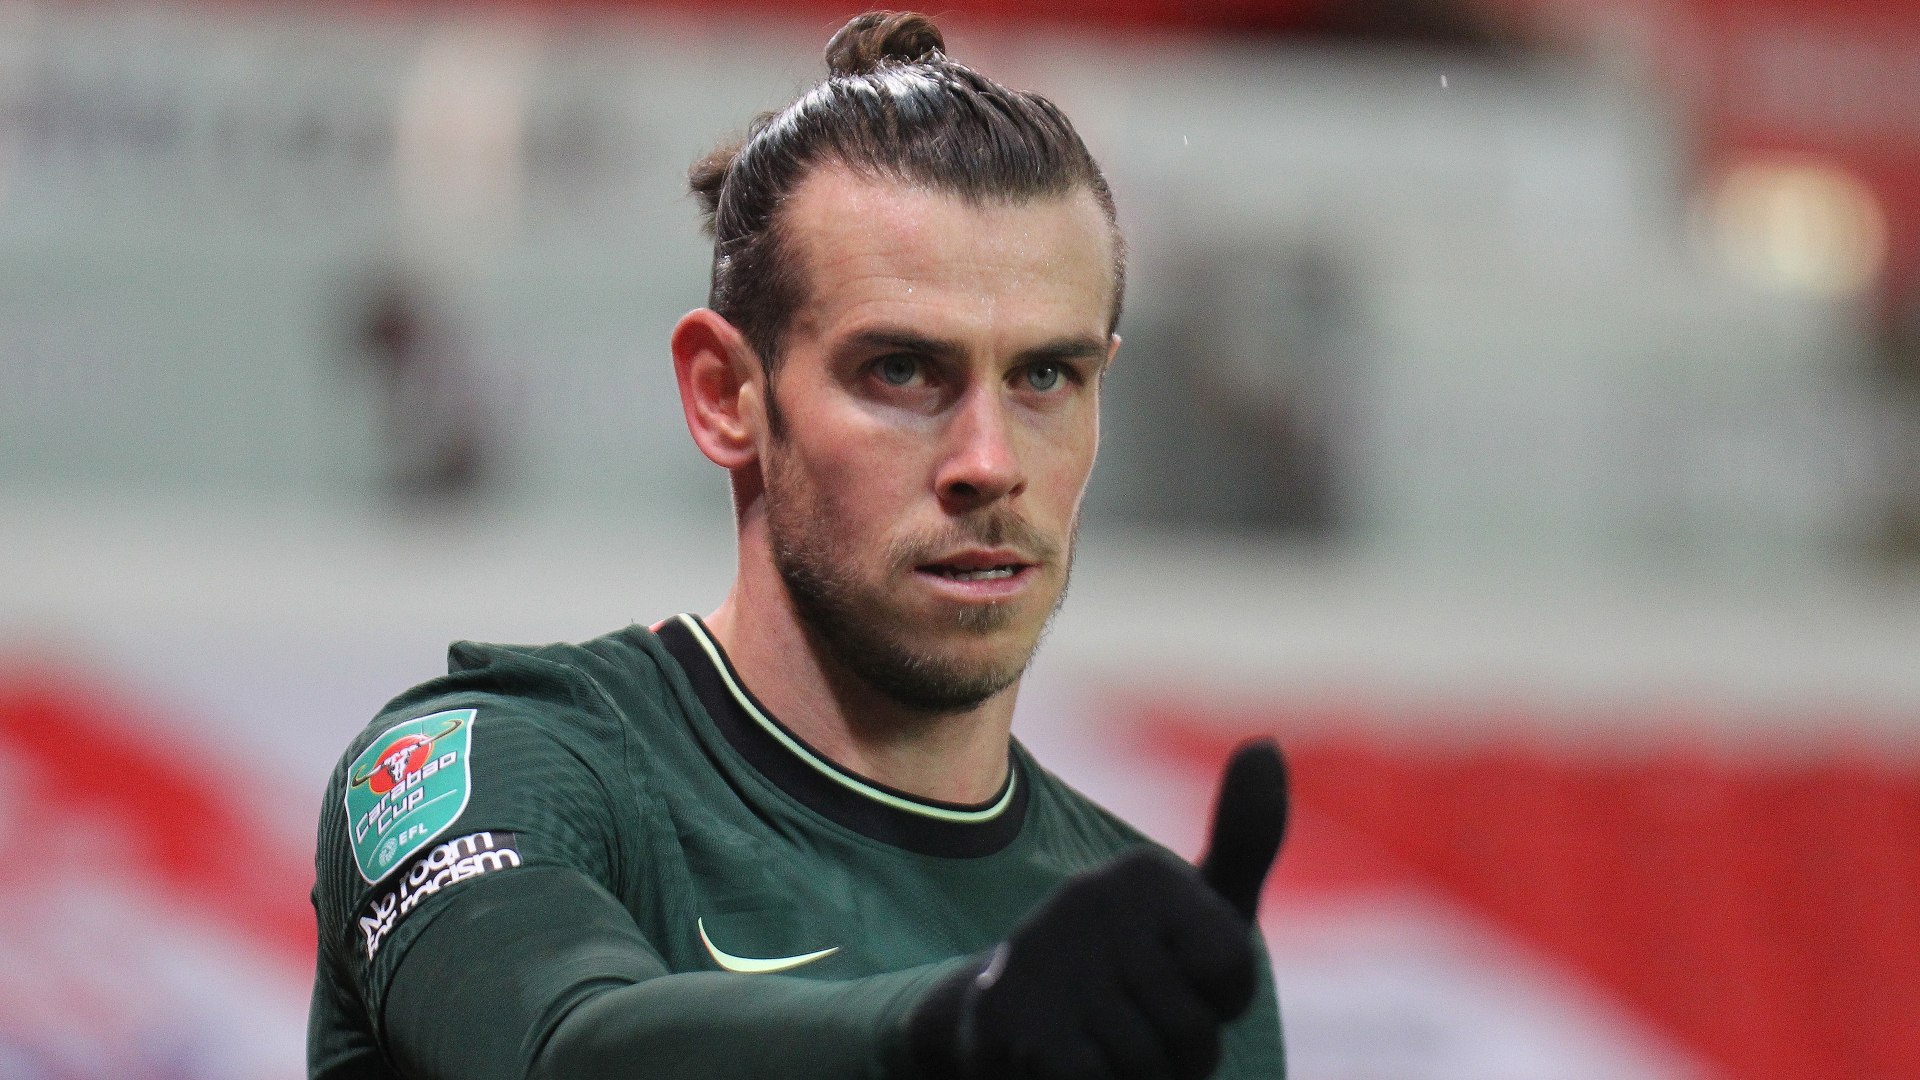 'Easy decision' to send Bale back to Madrid unless he improves, says Berbatov